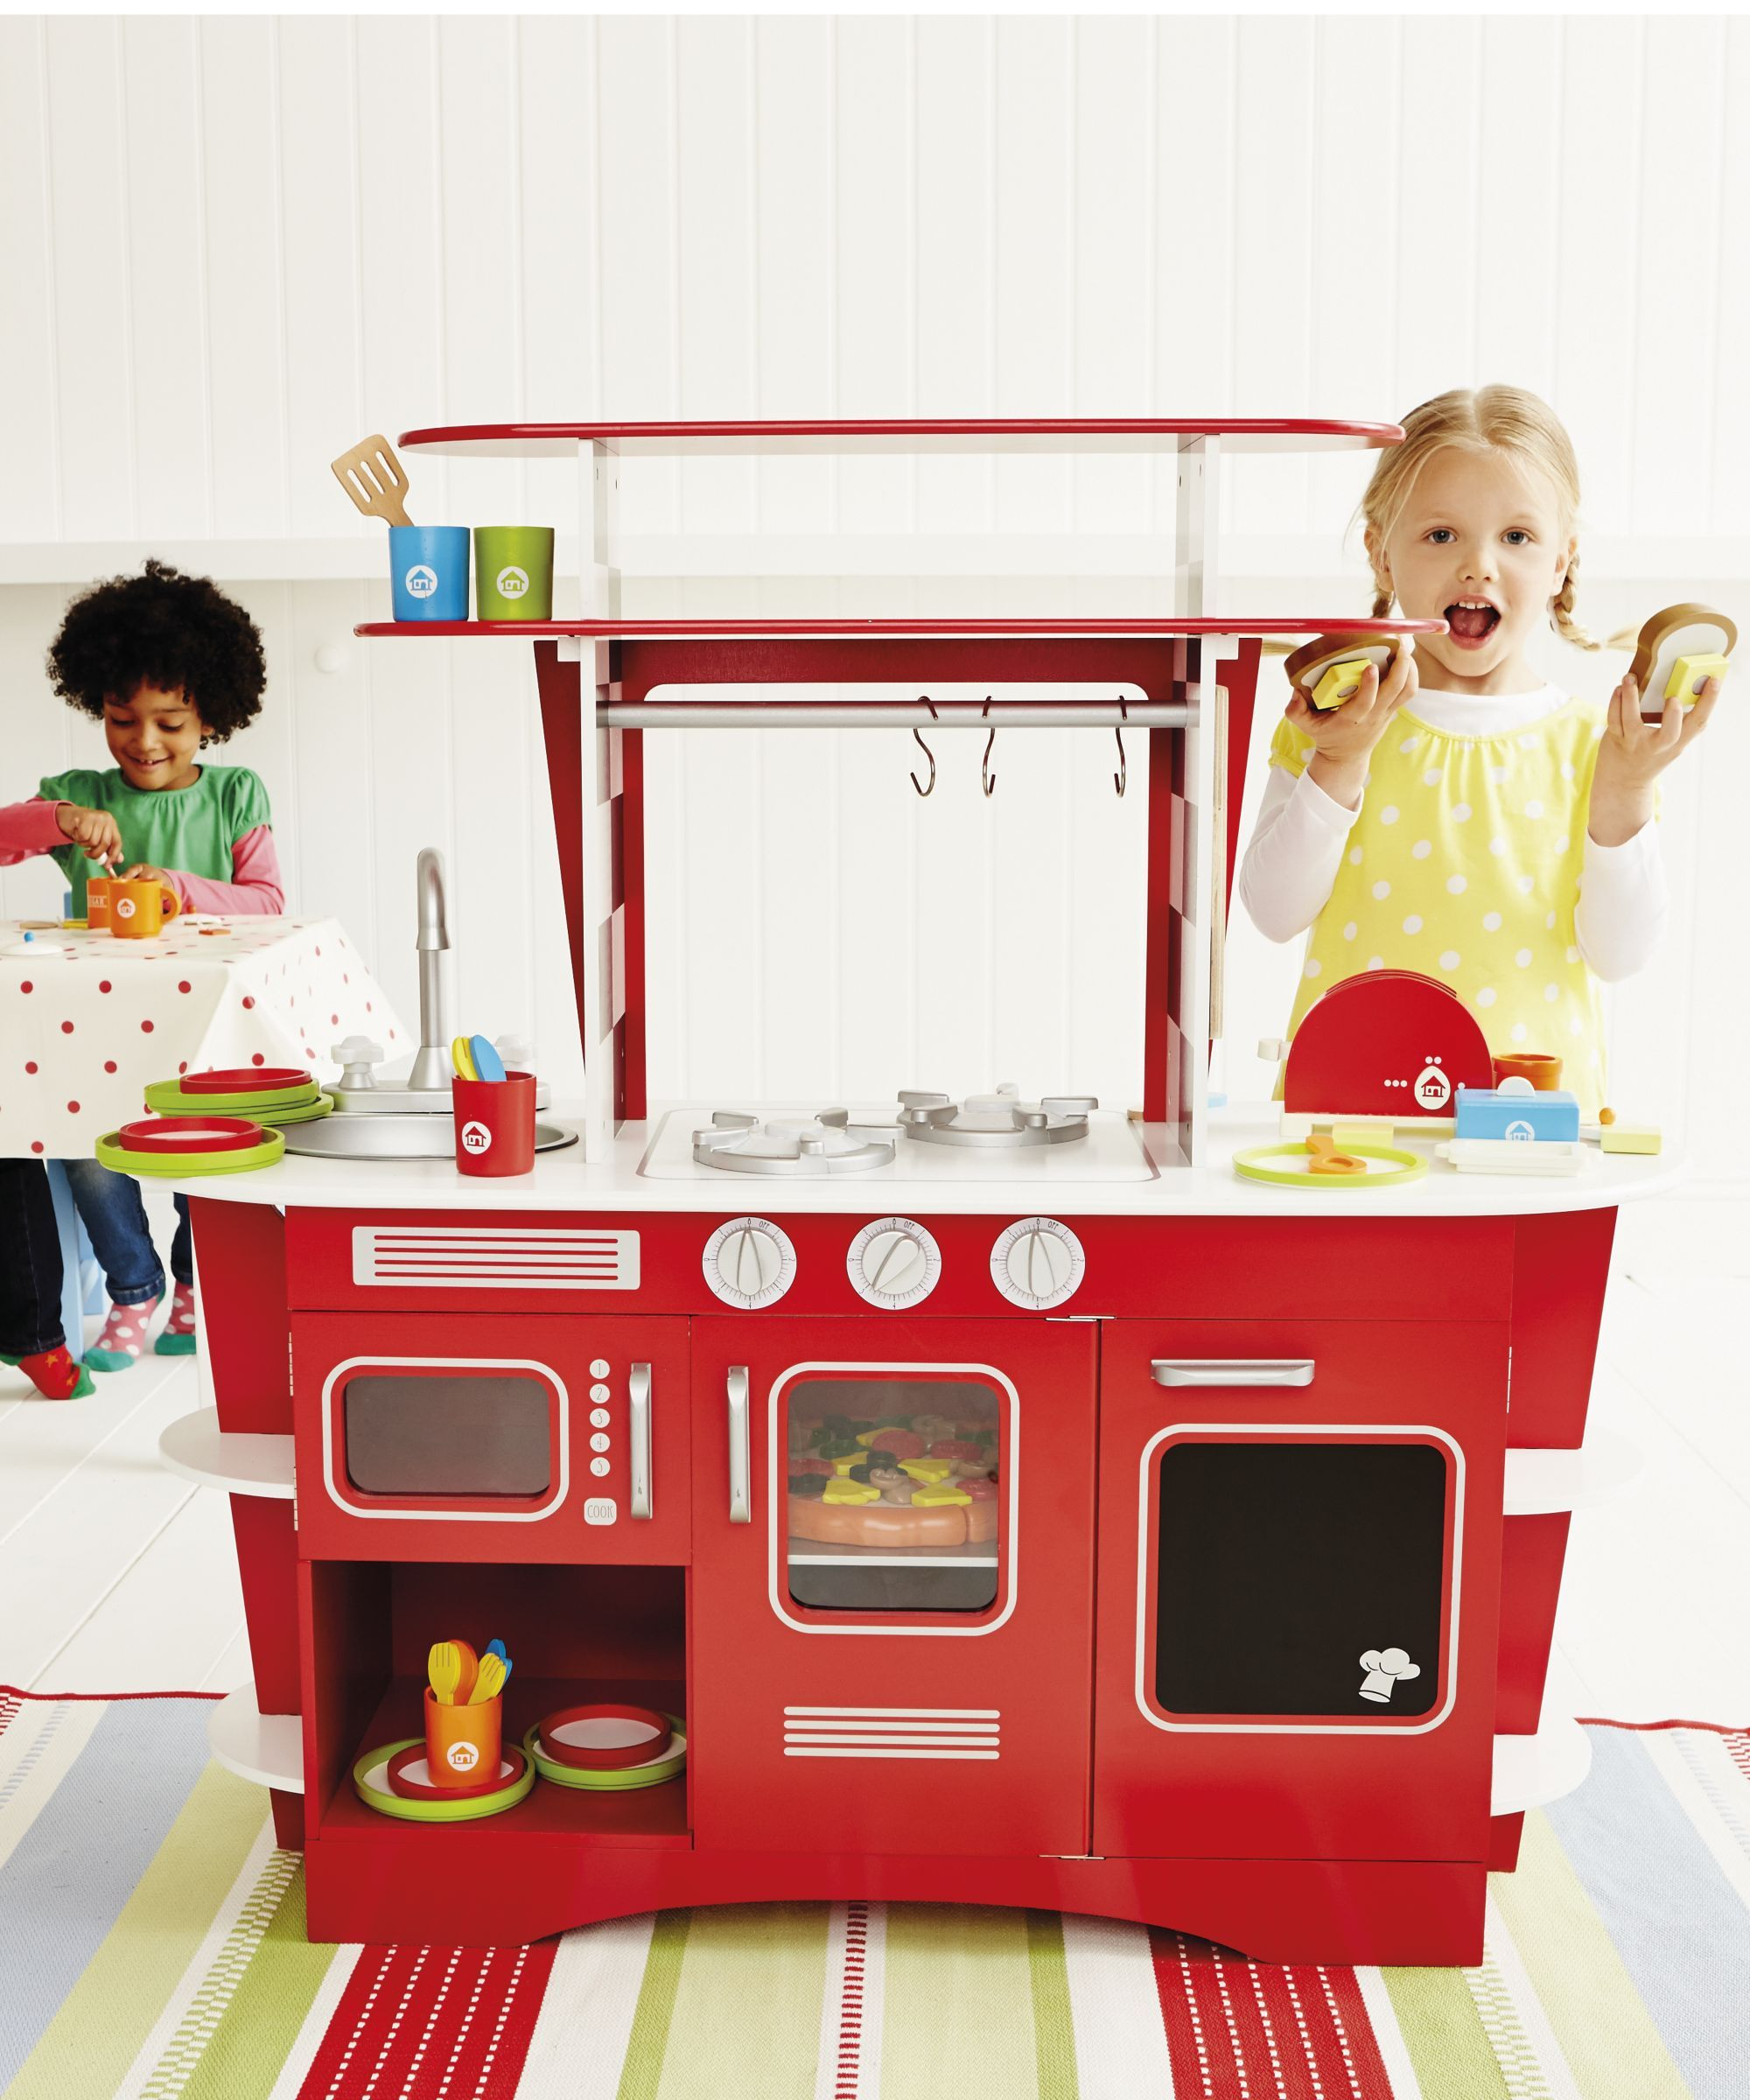 Nursery Bedding Christmas Is In The Air Pinterest Toy Kitchen